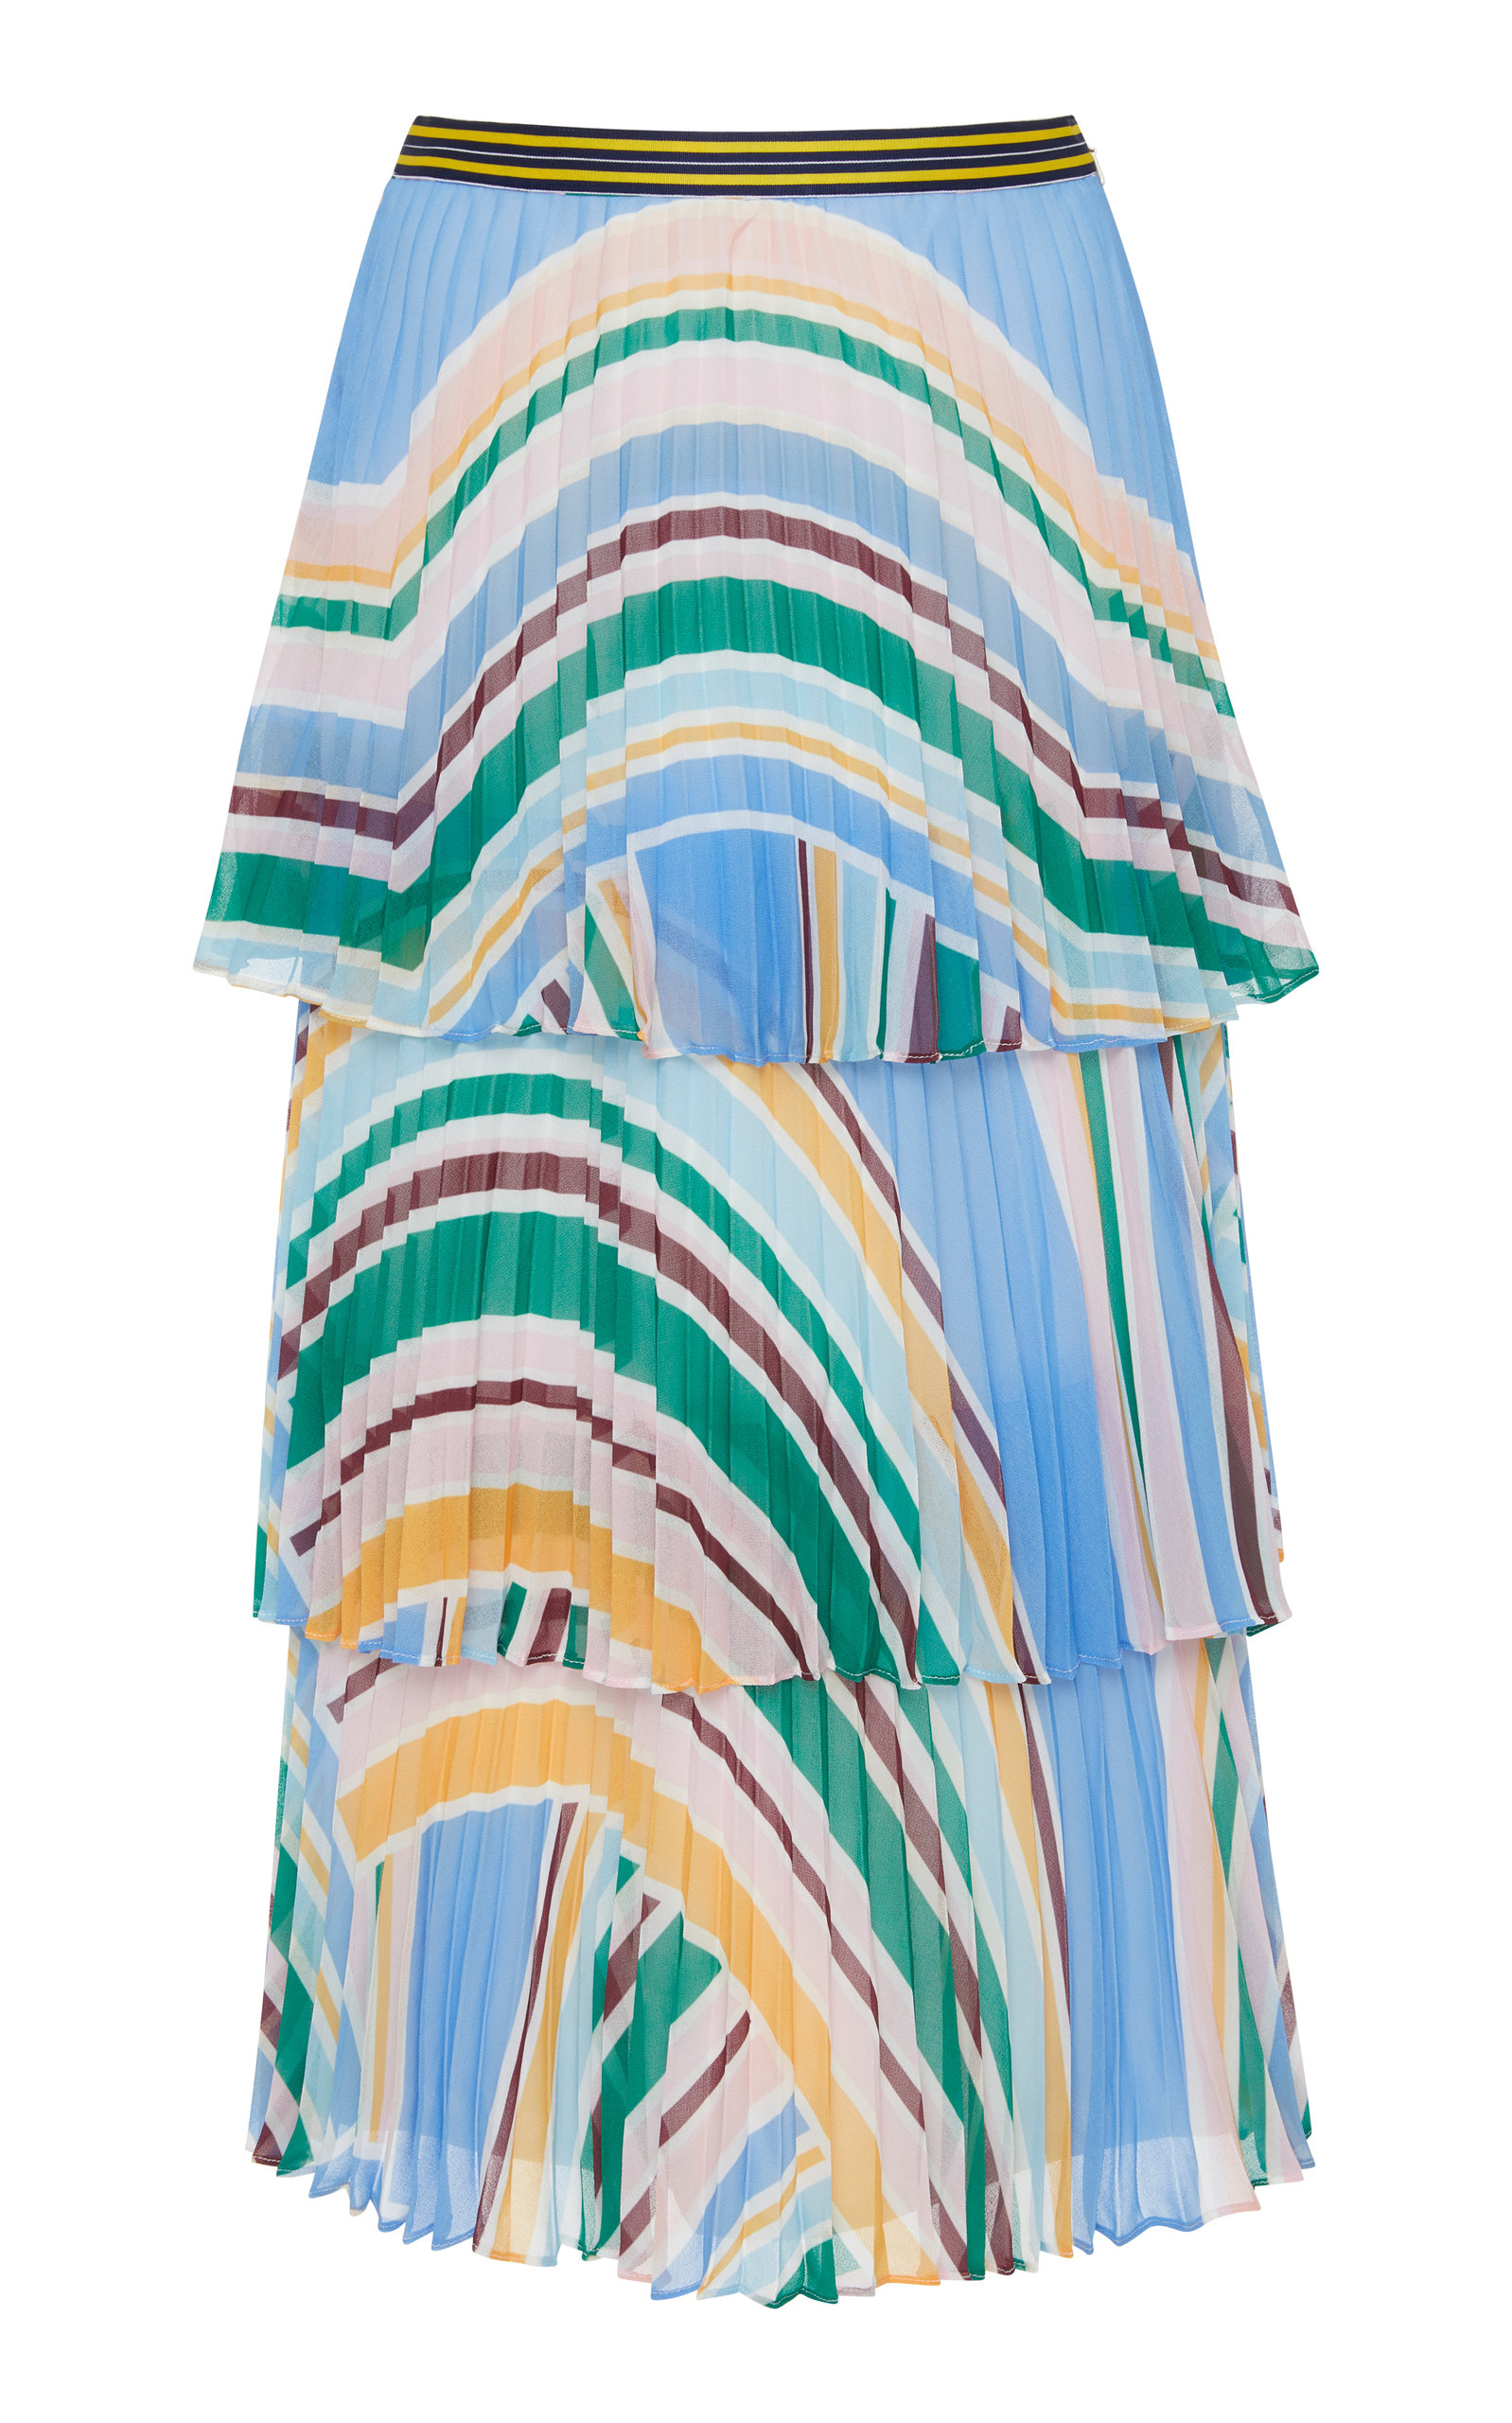 RACHEL GILBERT SOEKIE TIERED SKIRT